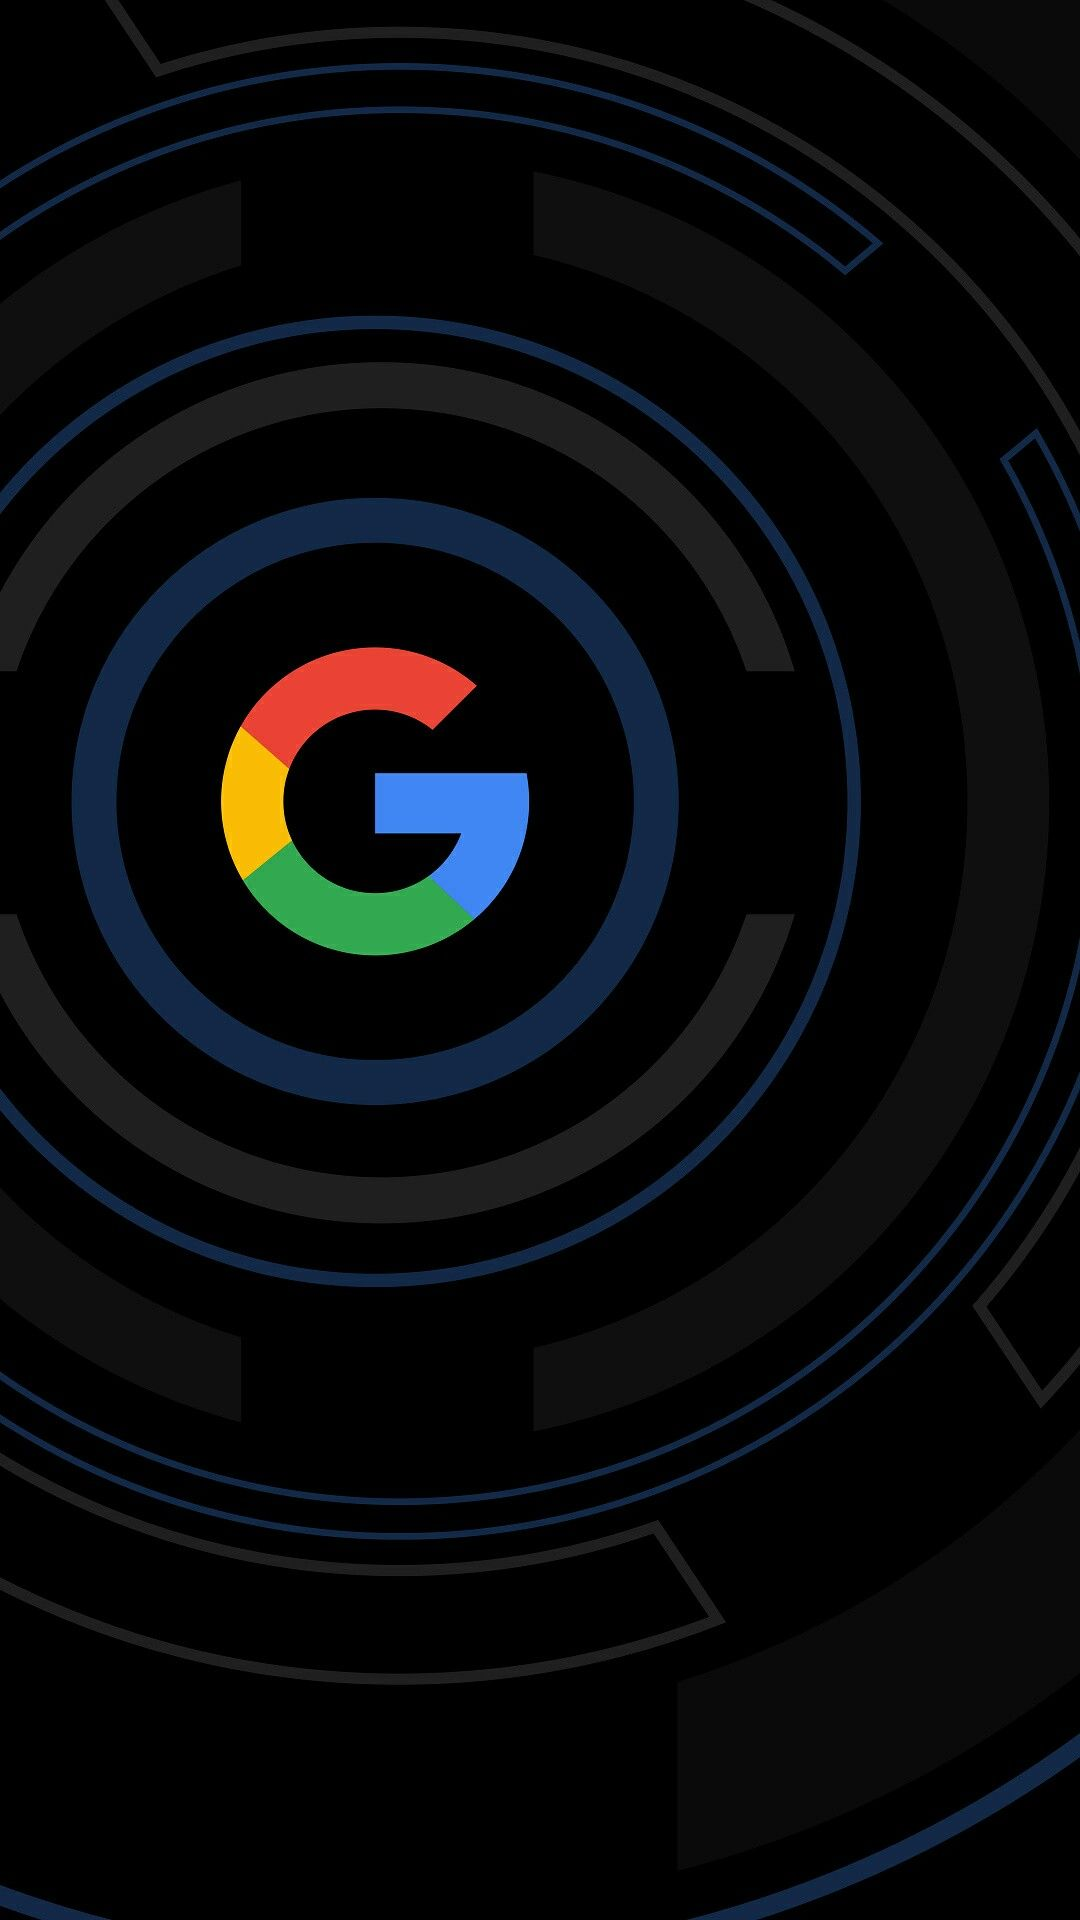 Black Google Wallpaper Google Pixel Wallpaper Profile Wallpaper Phone Screen Wallpaper